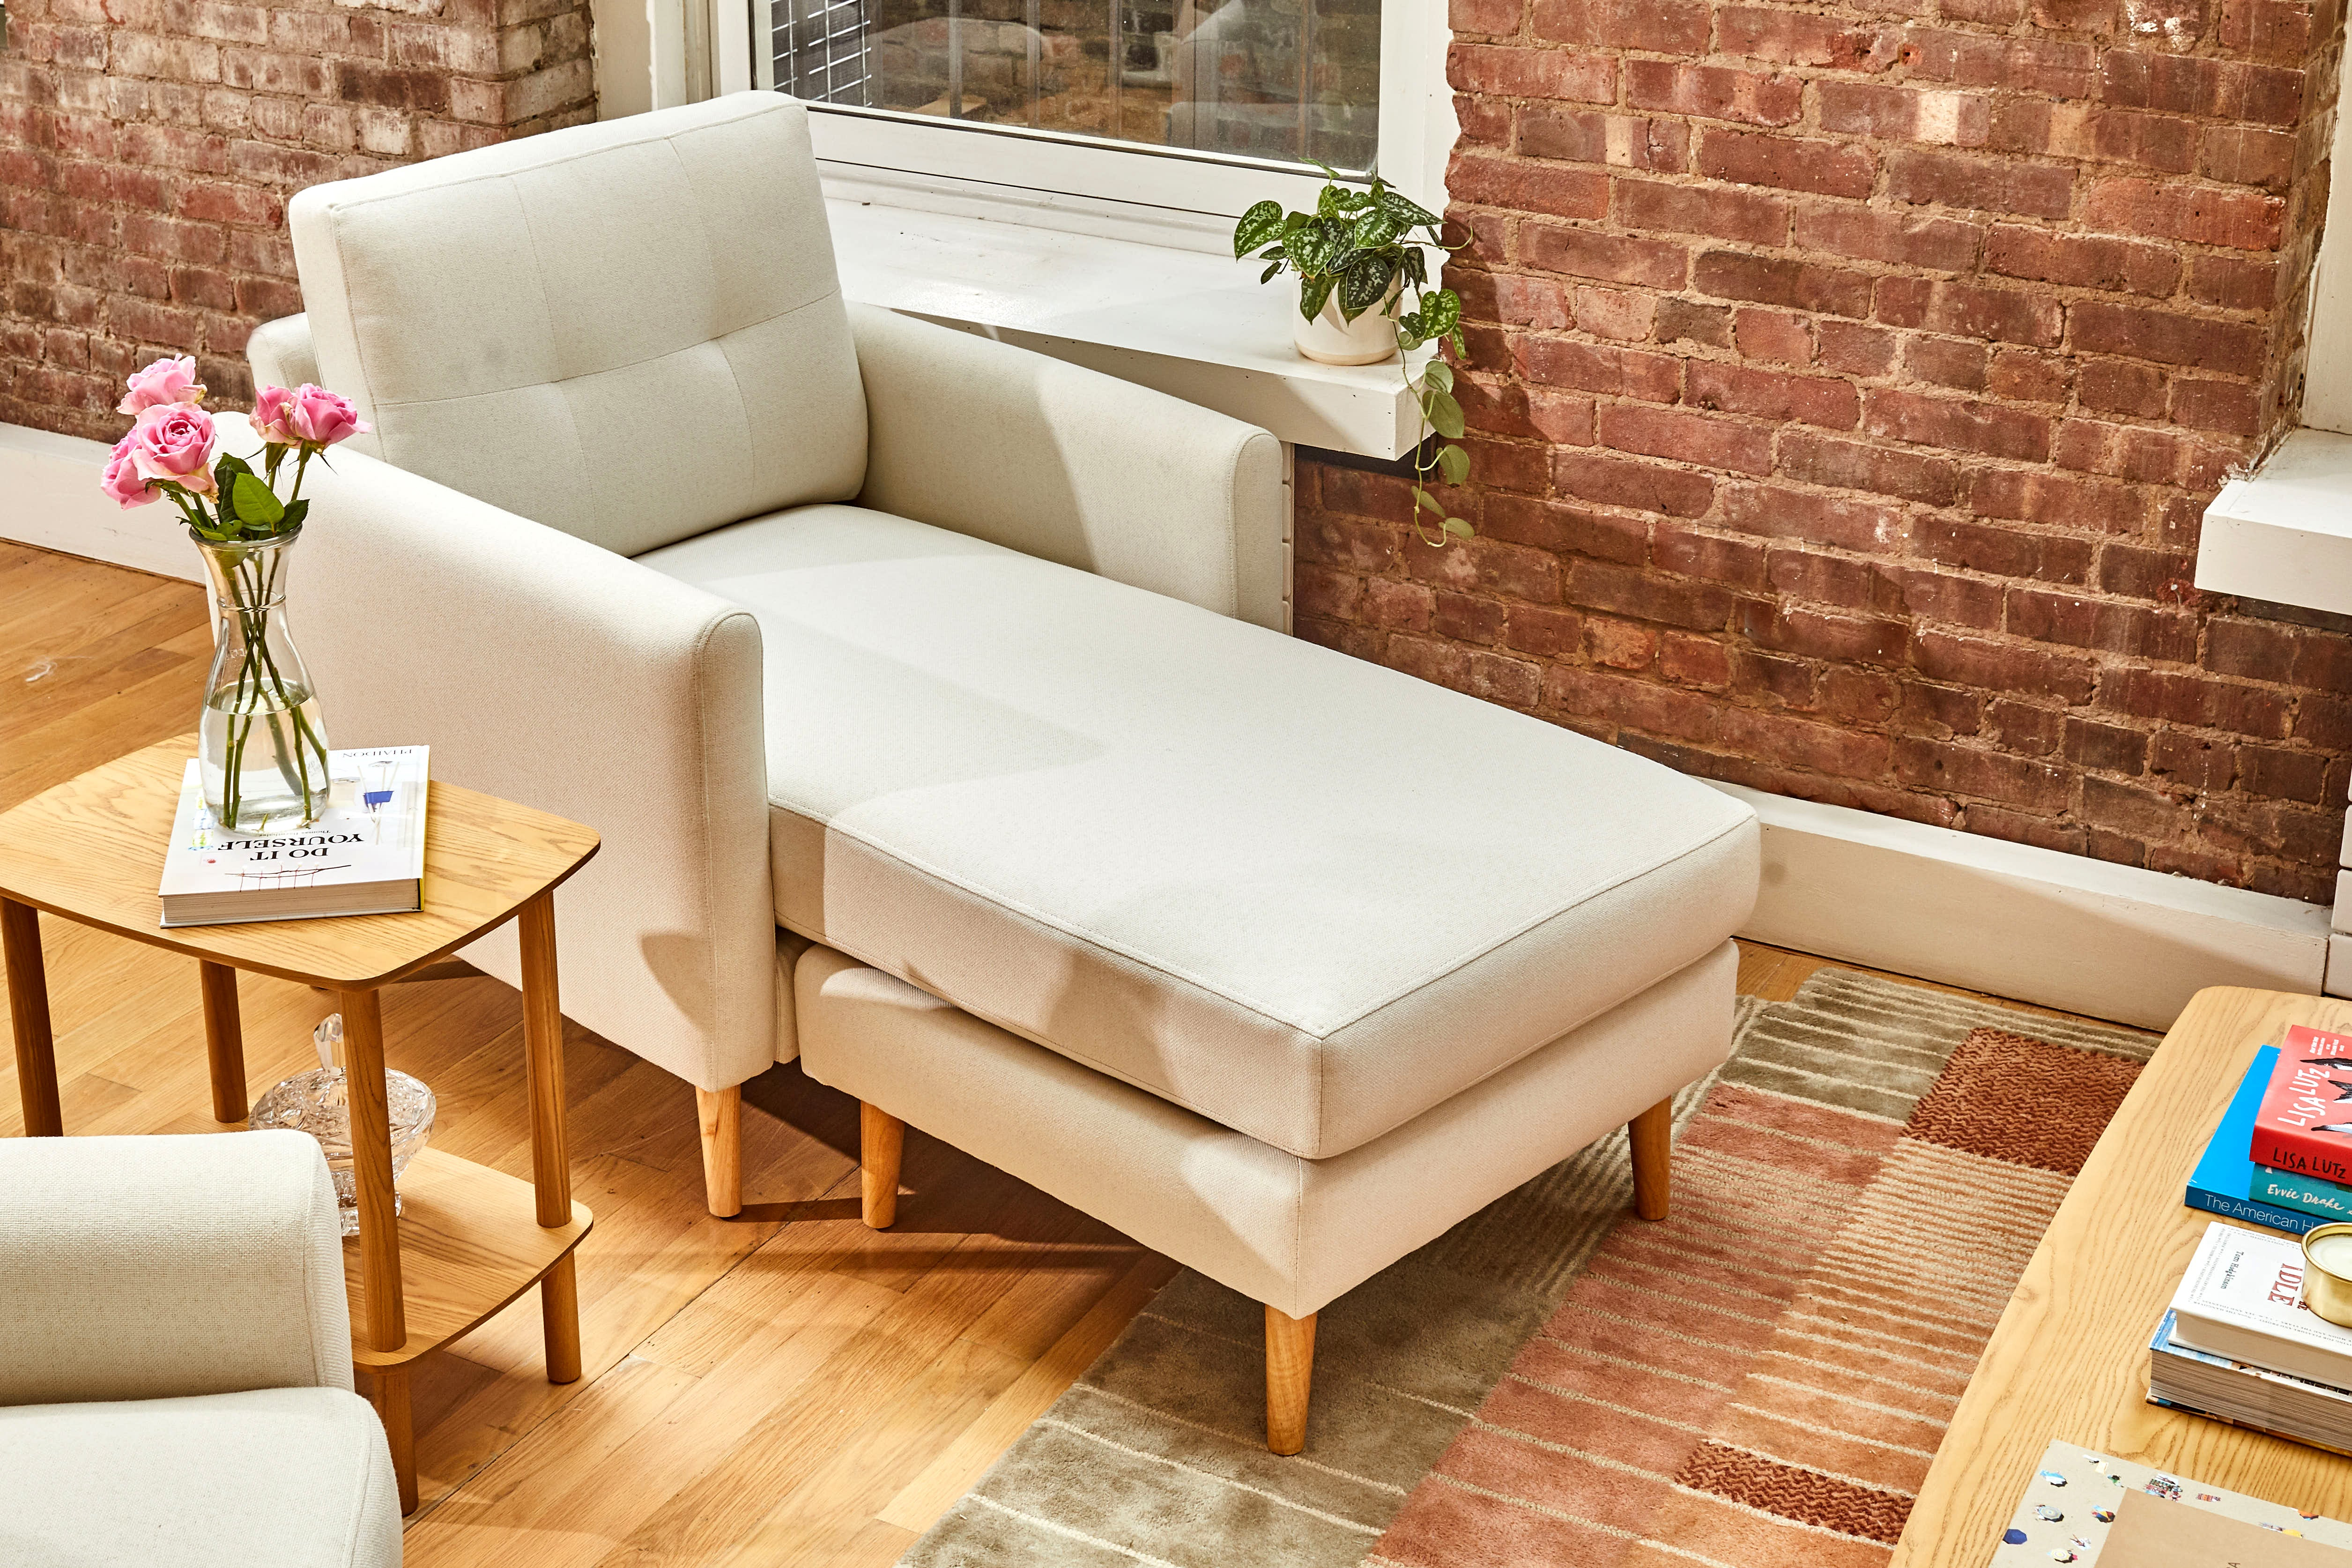 Brick wall with chaise